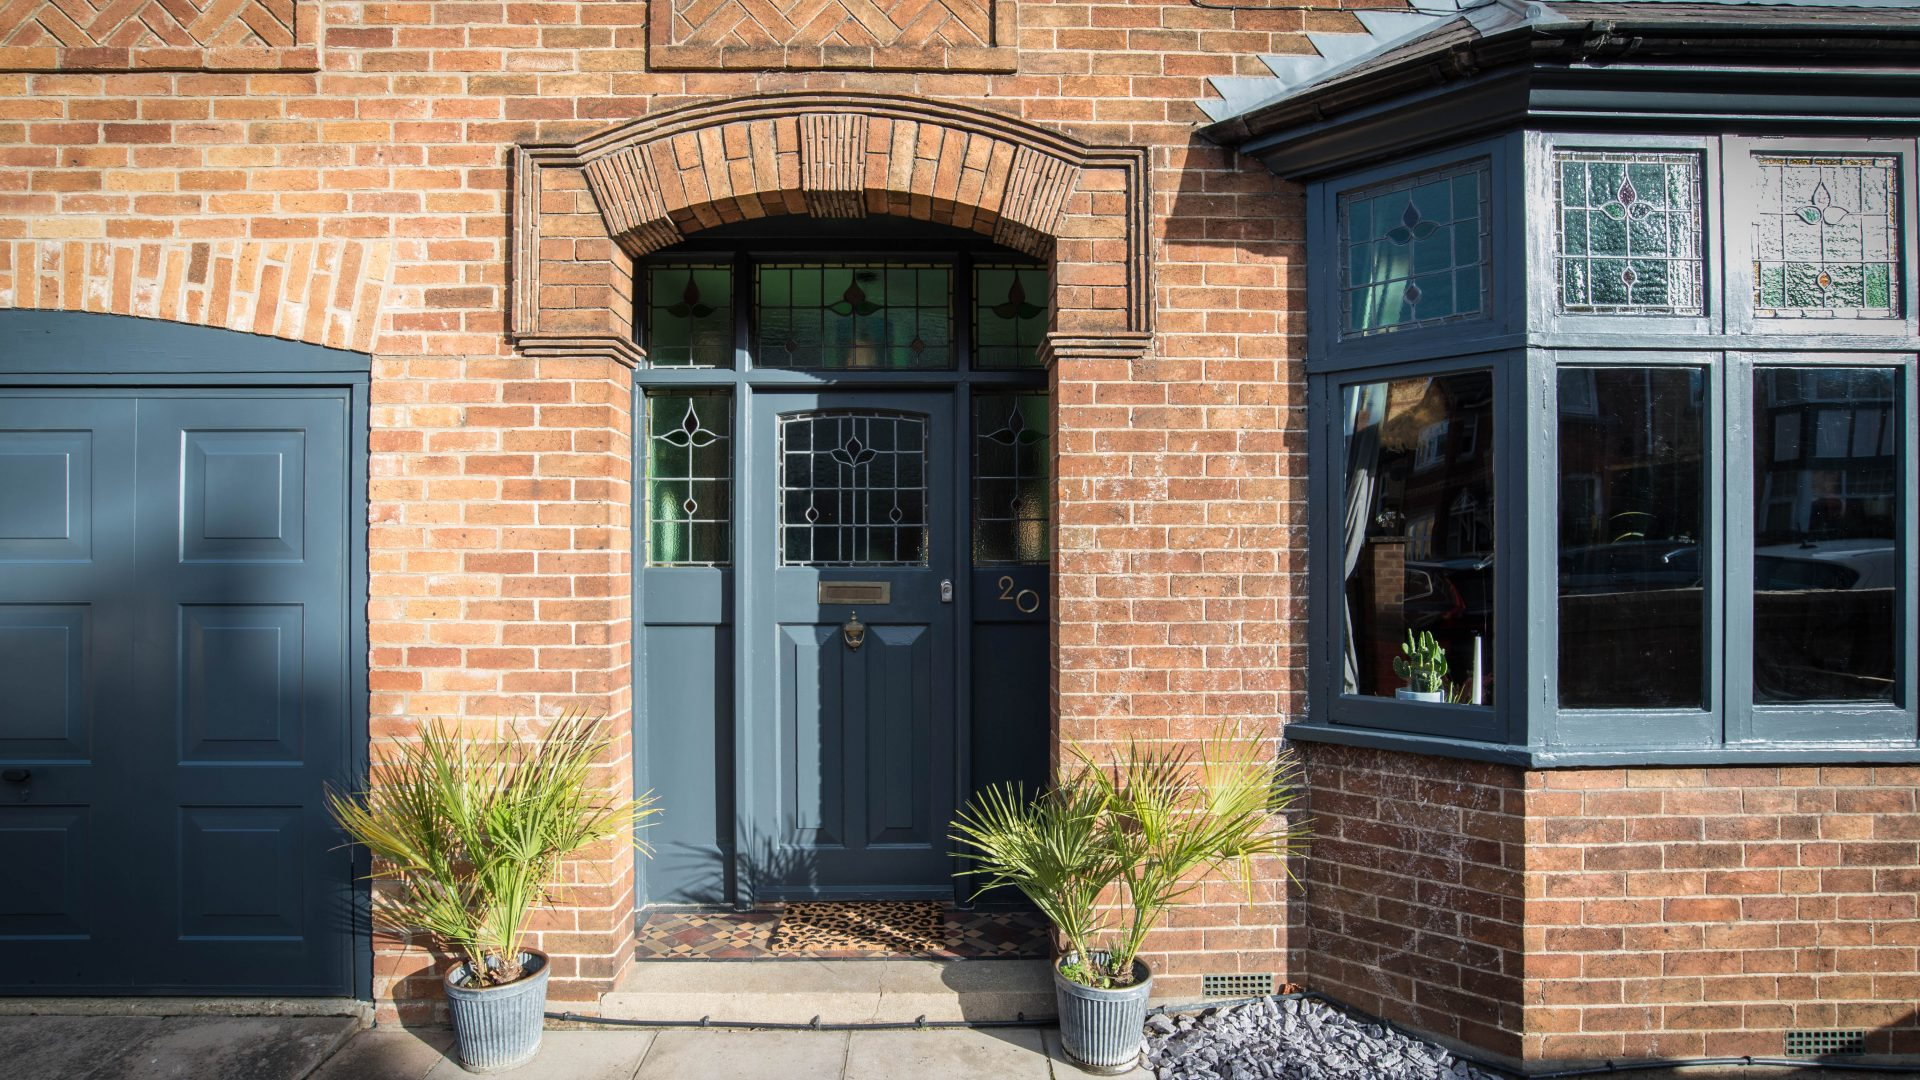 Queen Street, Stamford for sale with Mr and Mrs Clarke estate agent